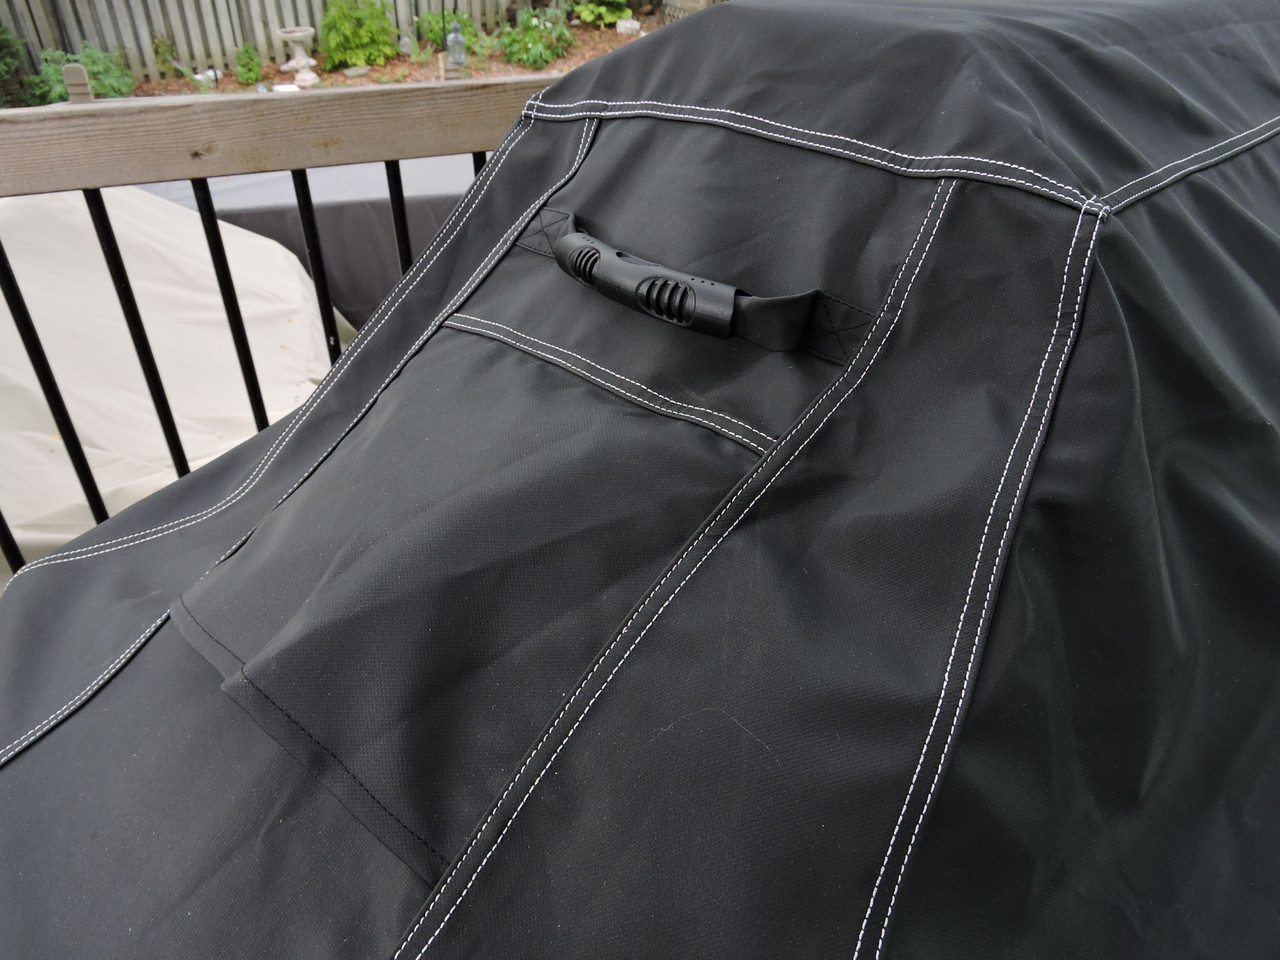 Tundra Supreme Grill Cover; Easy grip rubber handles and critical air vents